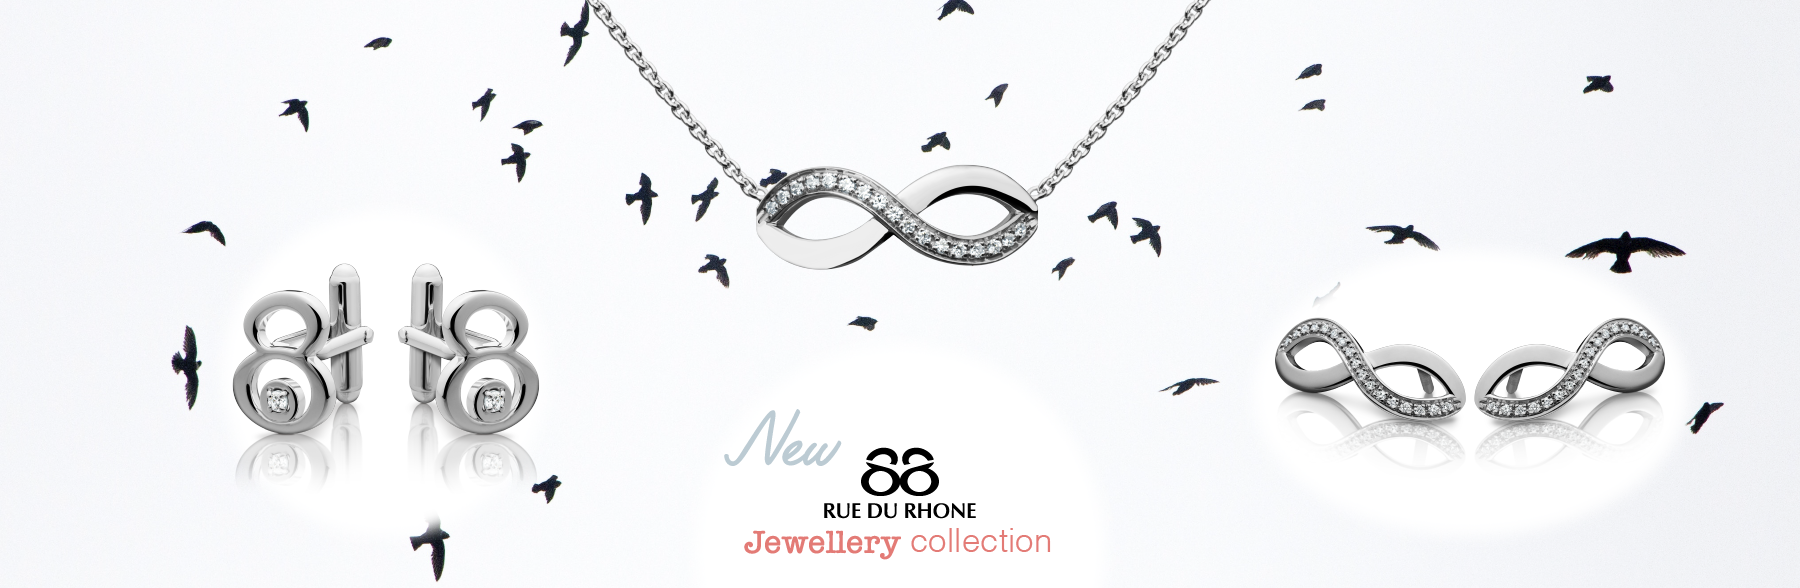 88RDR-Web Slider_Jewellery collection-8.png